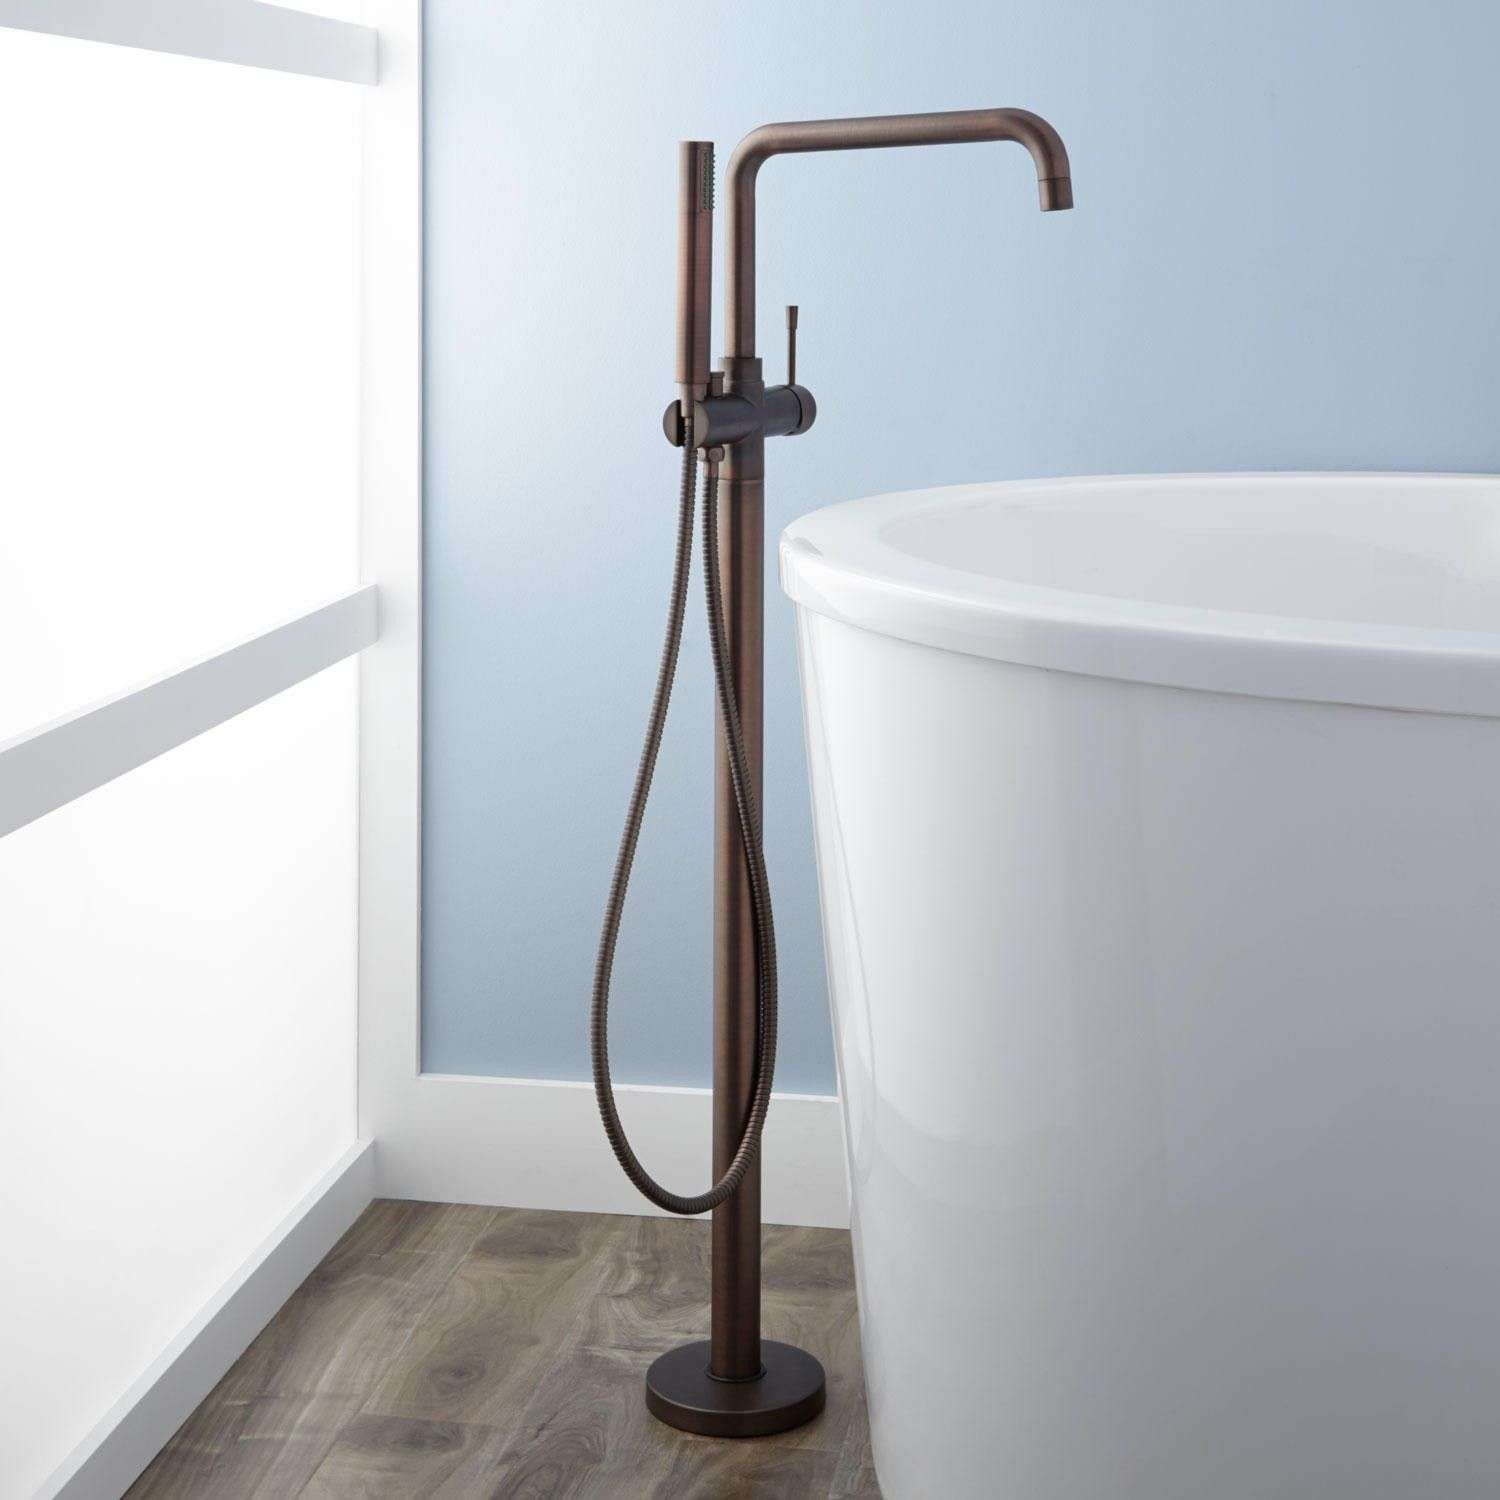 Humboldt Thermostatic Freestanding Tub Faucet | Freestanding tub ...